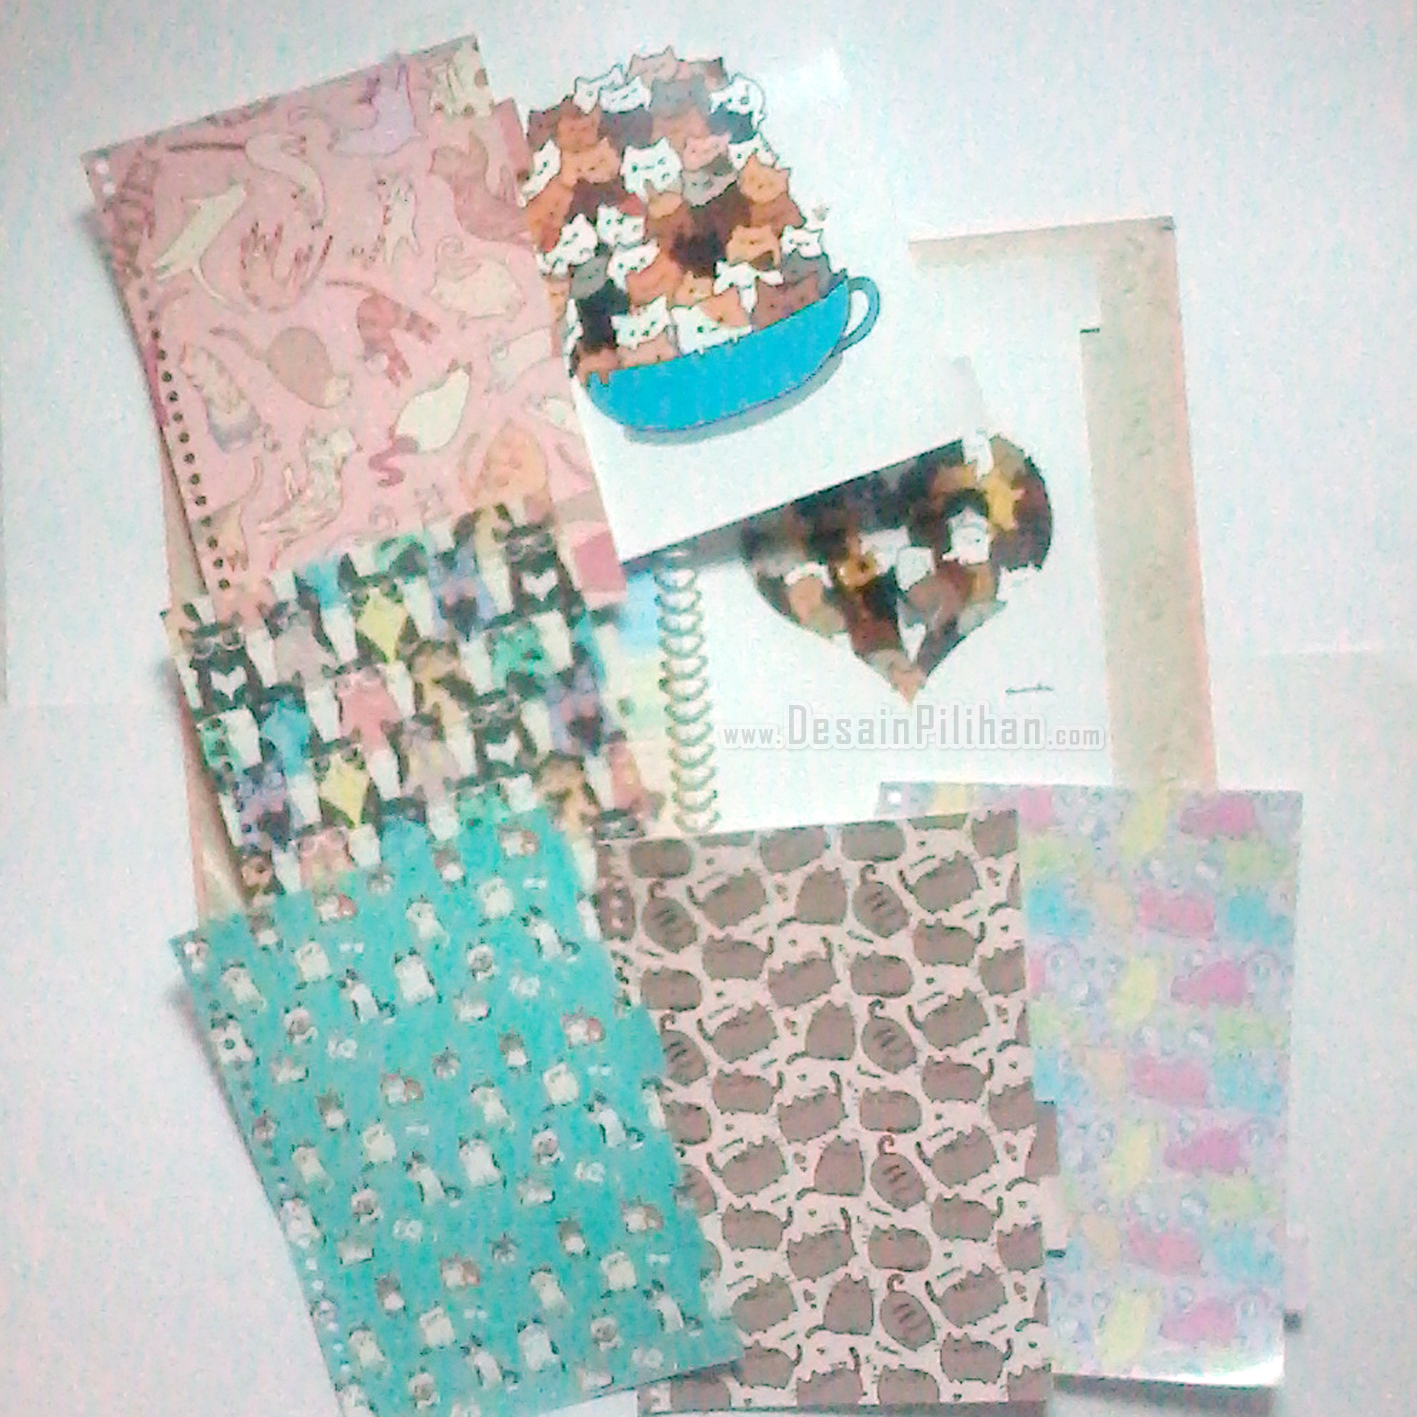 DIVIDER BINDER CUSTOM, PEMBATAS BINDER ANIMAL, CAT CUTE